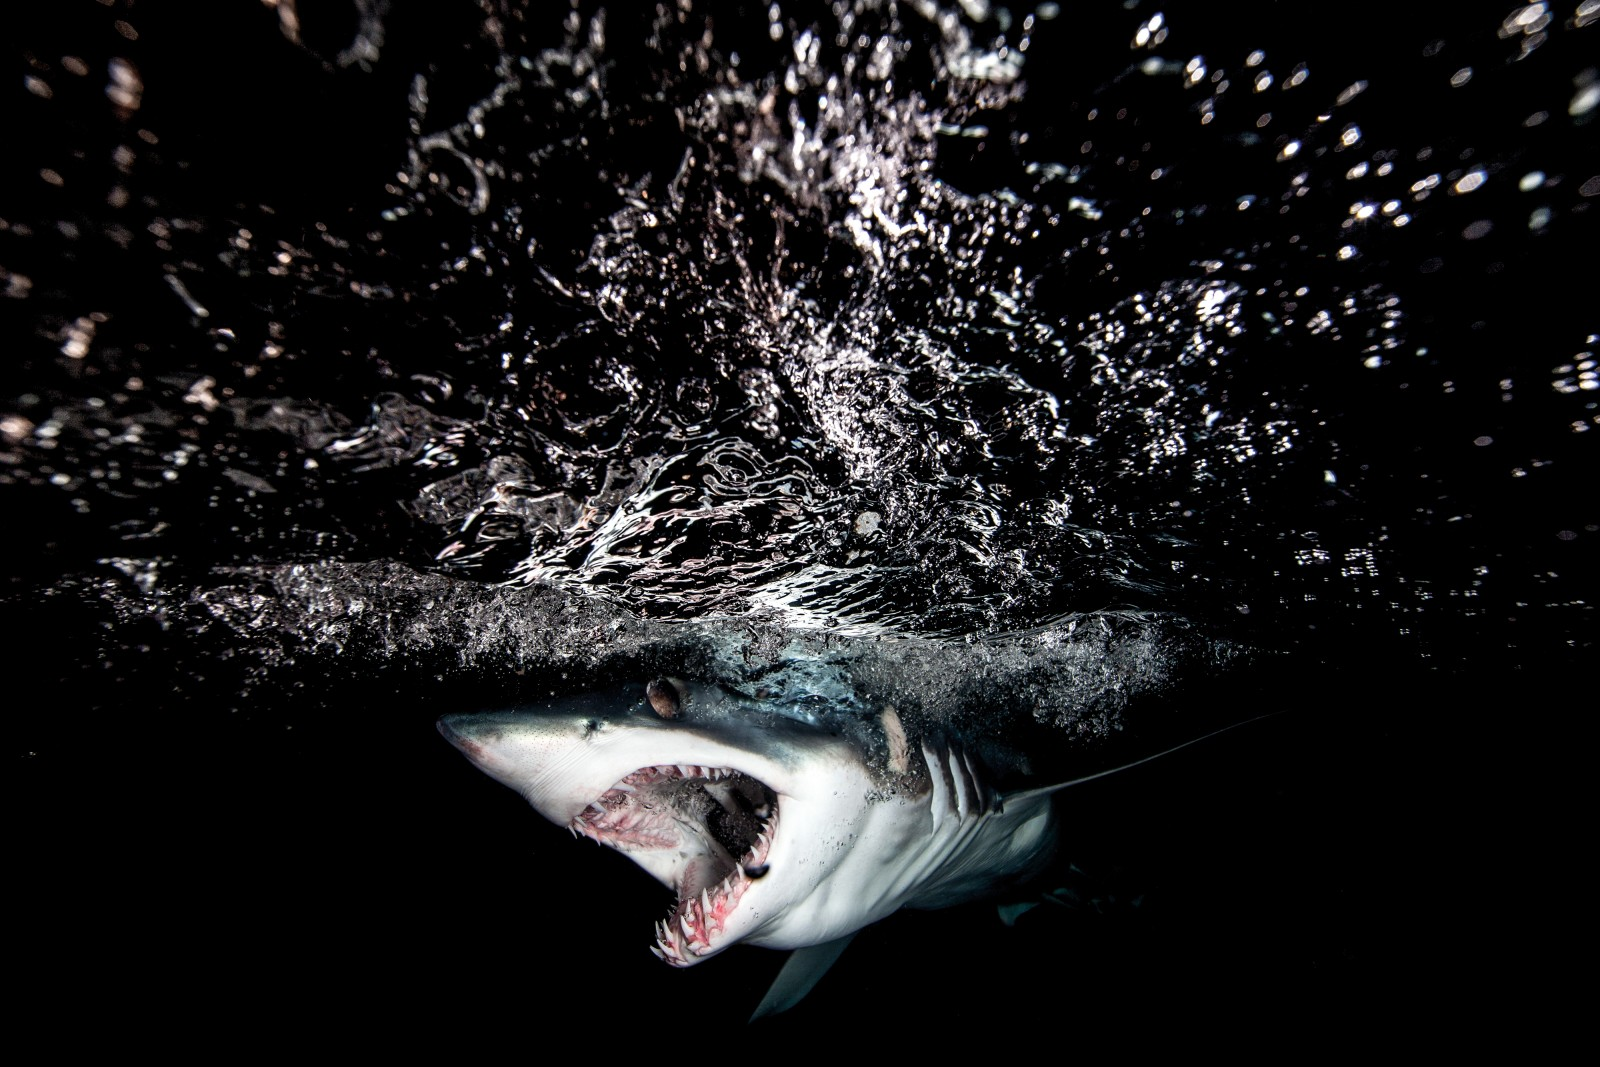 Like many sharks, the mako is an ambush predator, often lurking near the surface and approaching its prey from behind the light. In shooting this feature photographer Richard Robinson would often see a shark on one side, only to have it disappear from view and appear seconds later on his blind side.